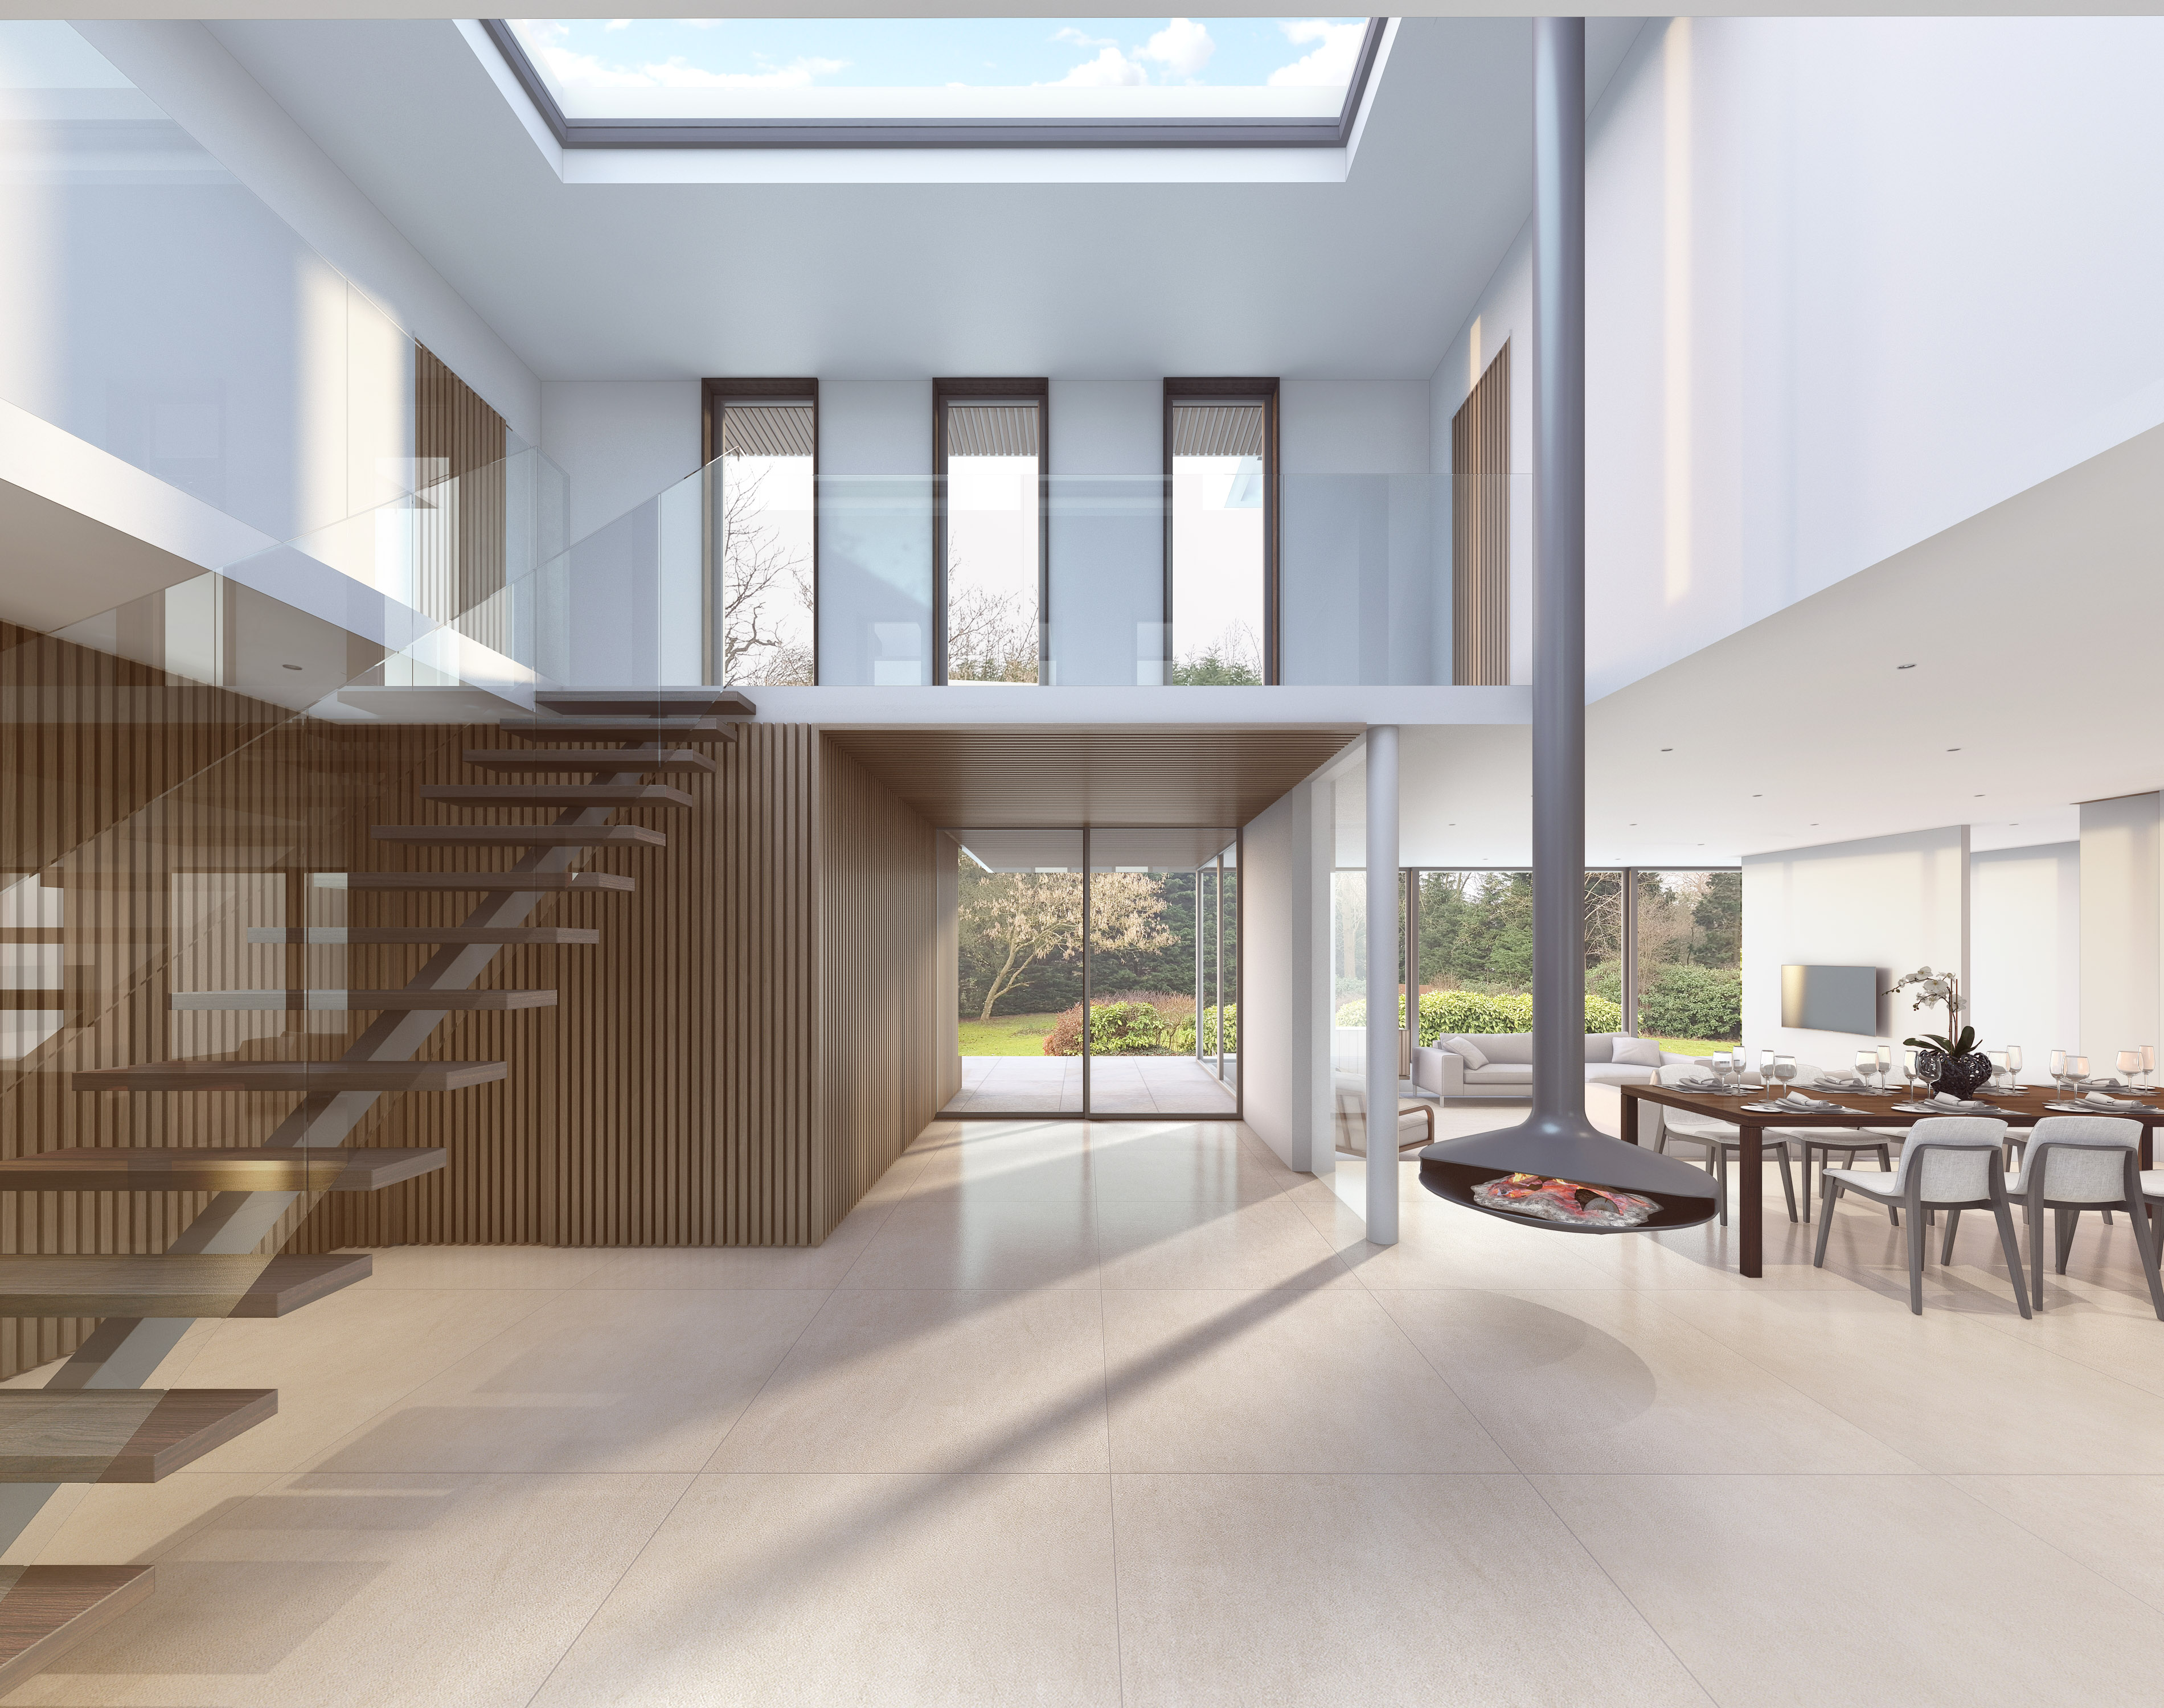 Planning consent achieved for stunning house transformation